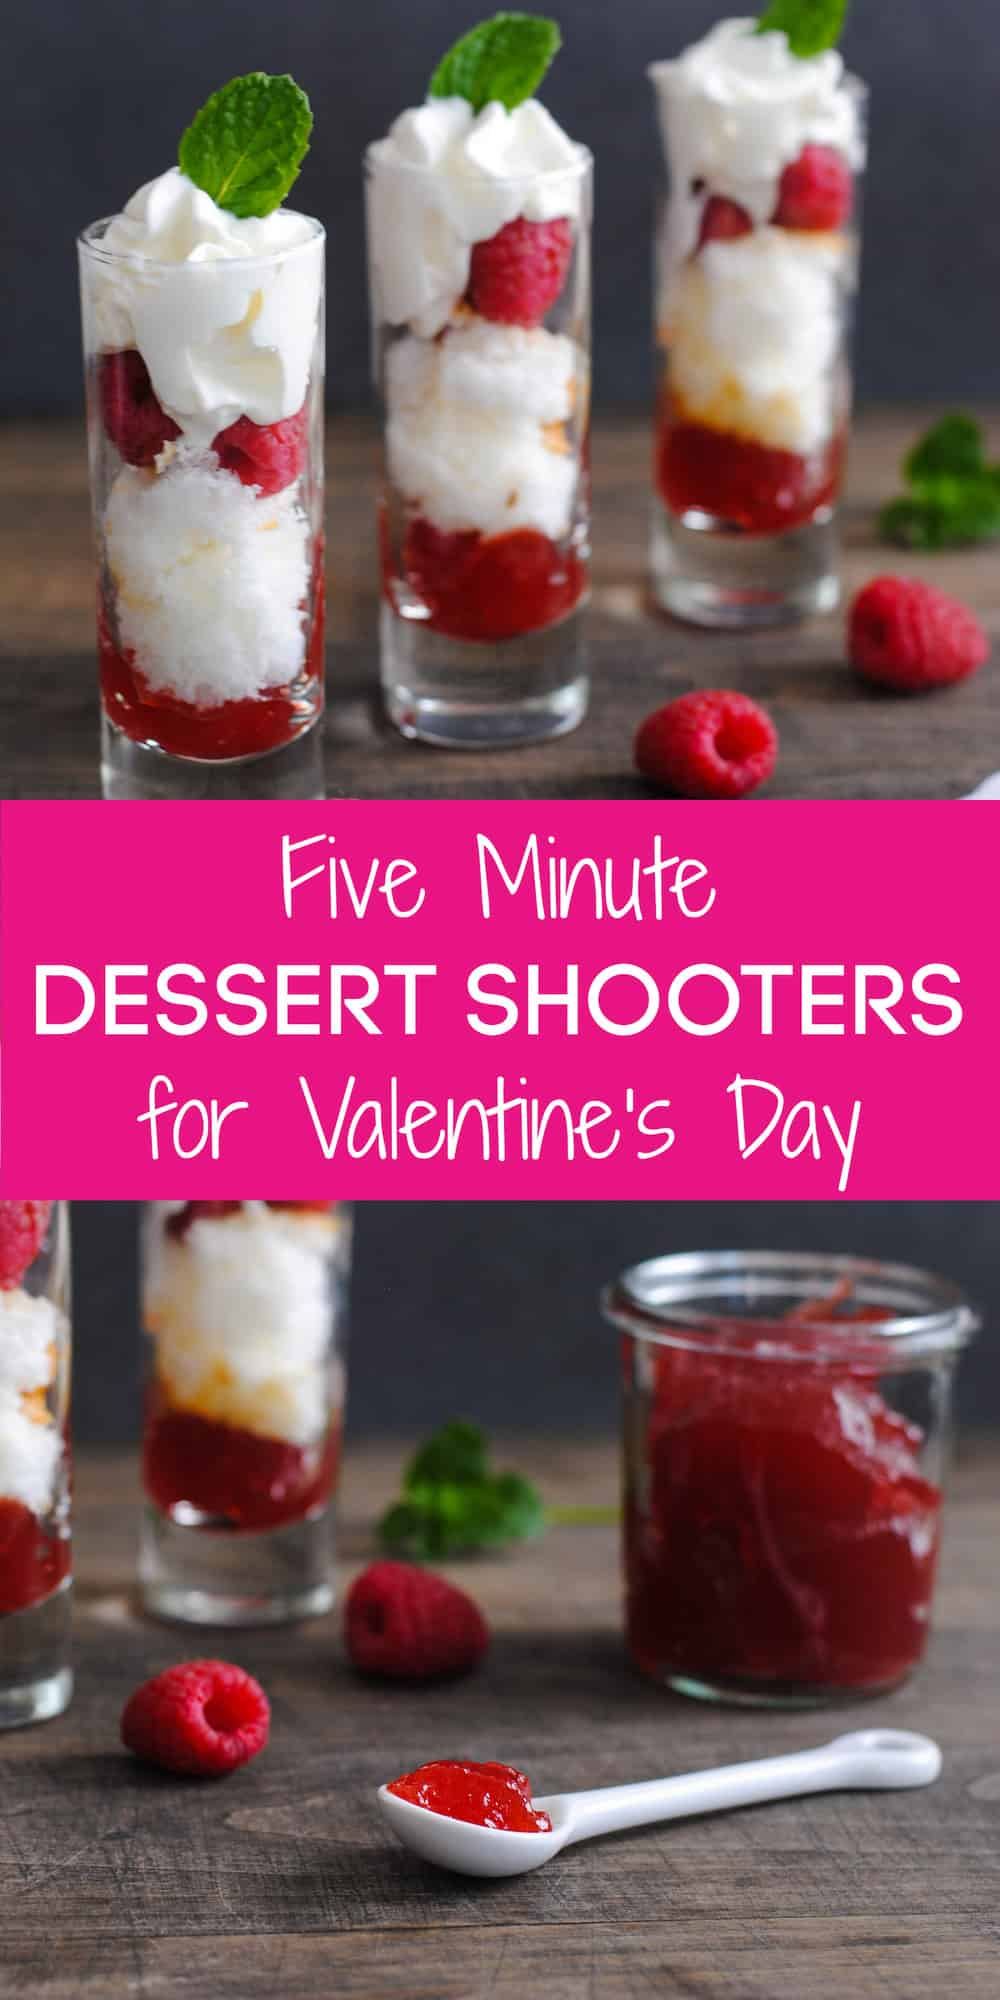 Looking for a light Valentine's Day Dessert after a decadent meal? These five minute shooters are a simple, fresh and sweet treat for your Valentine! | foxeslovelemons.com